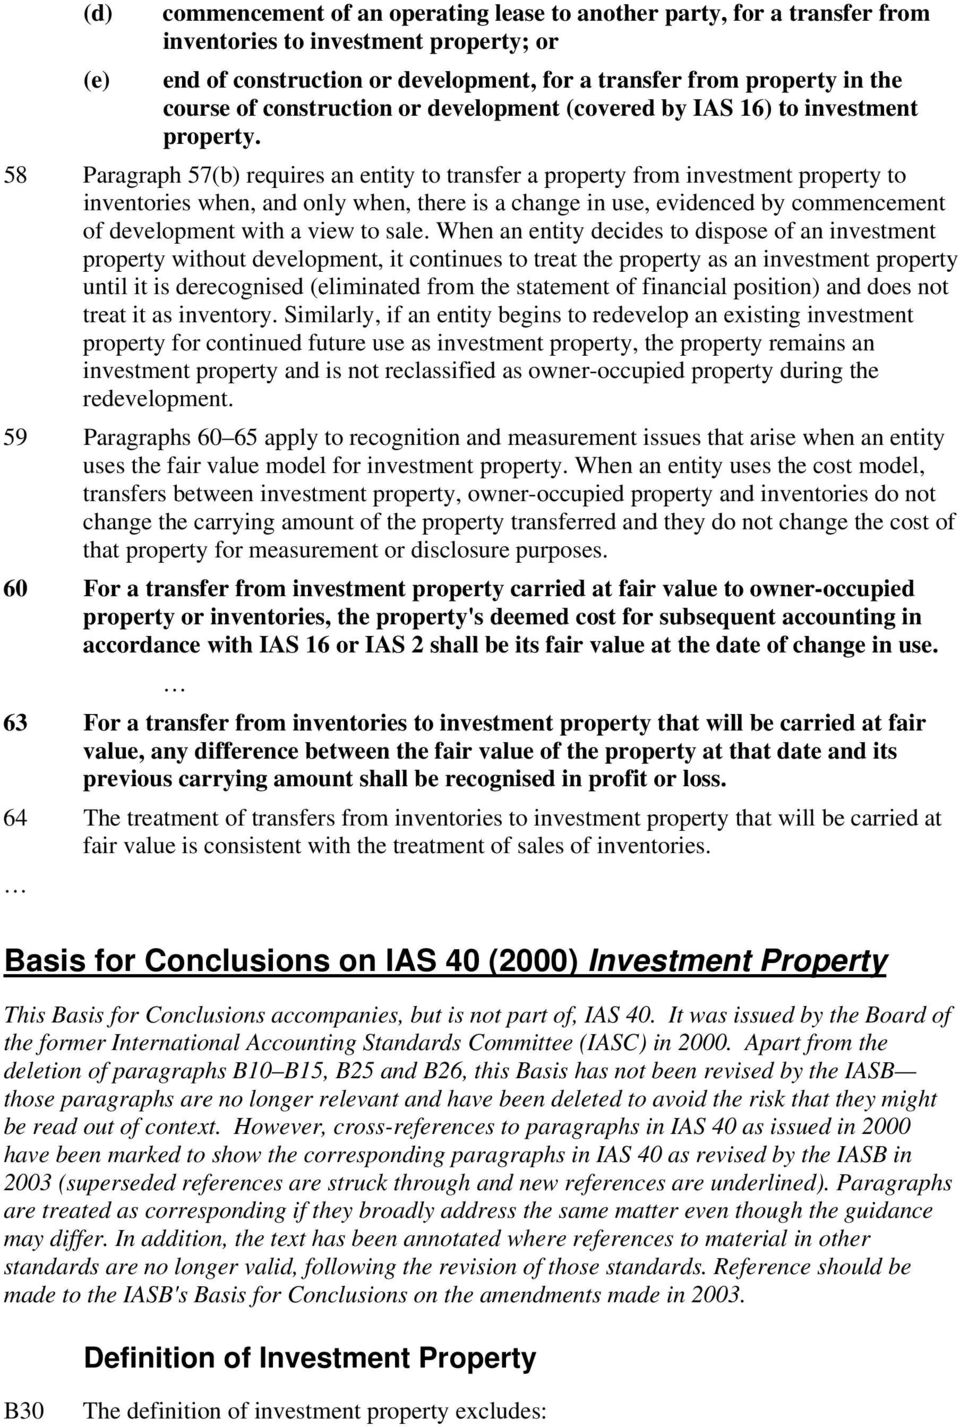 58 Paragraph 57(b) requires an entity to transfer a property from investment property to inventories when, and only when, there is a change in use, evidenced by commencement of development with a